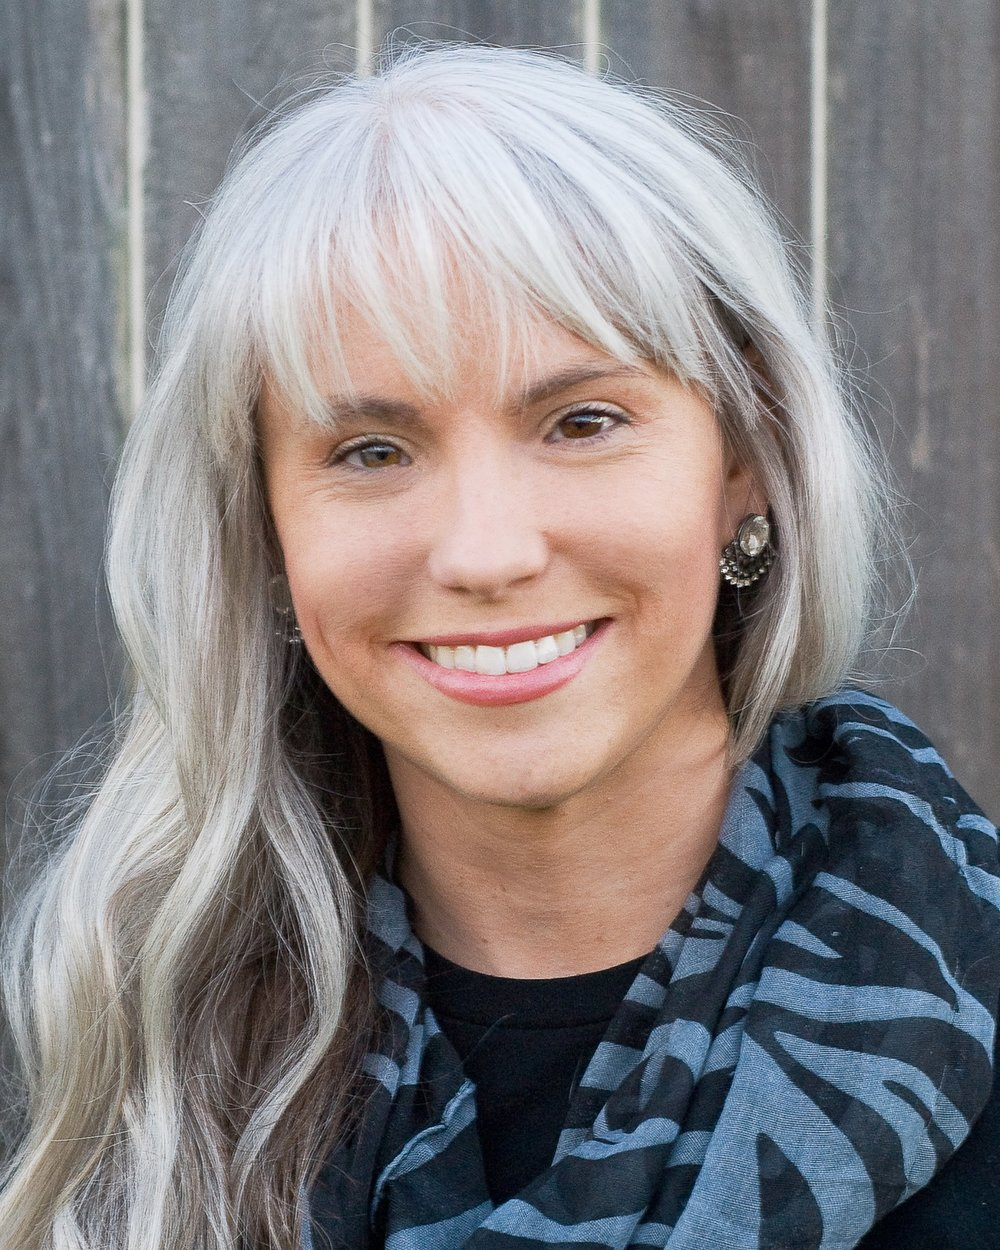 Carrie Cates is currently the Community Director of Motion Media Arts Center. - Learn more about her & her involvement in the arts community!